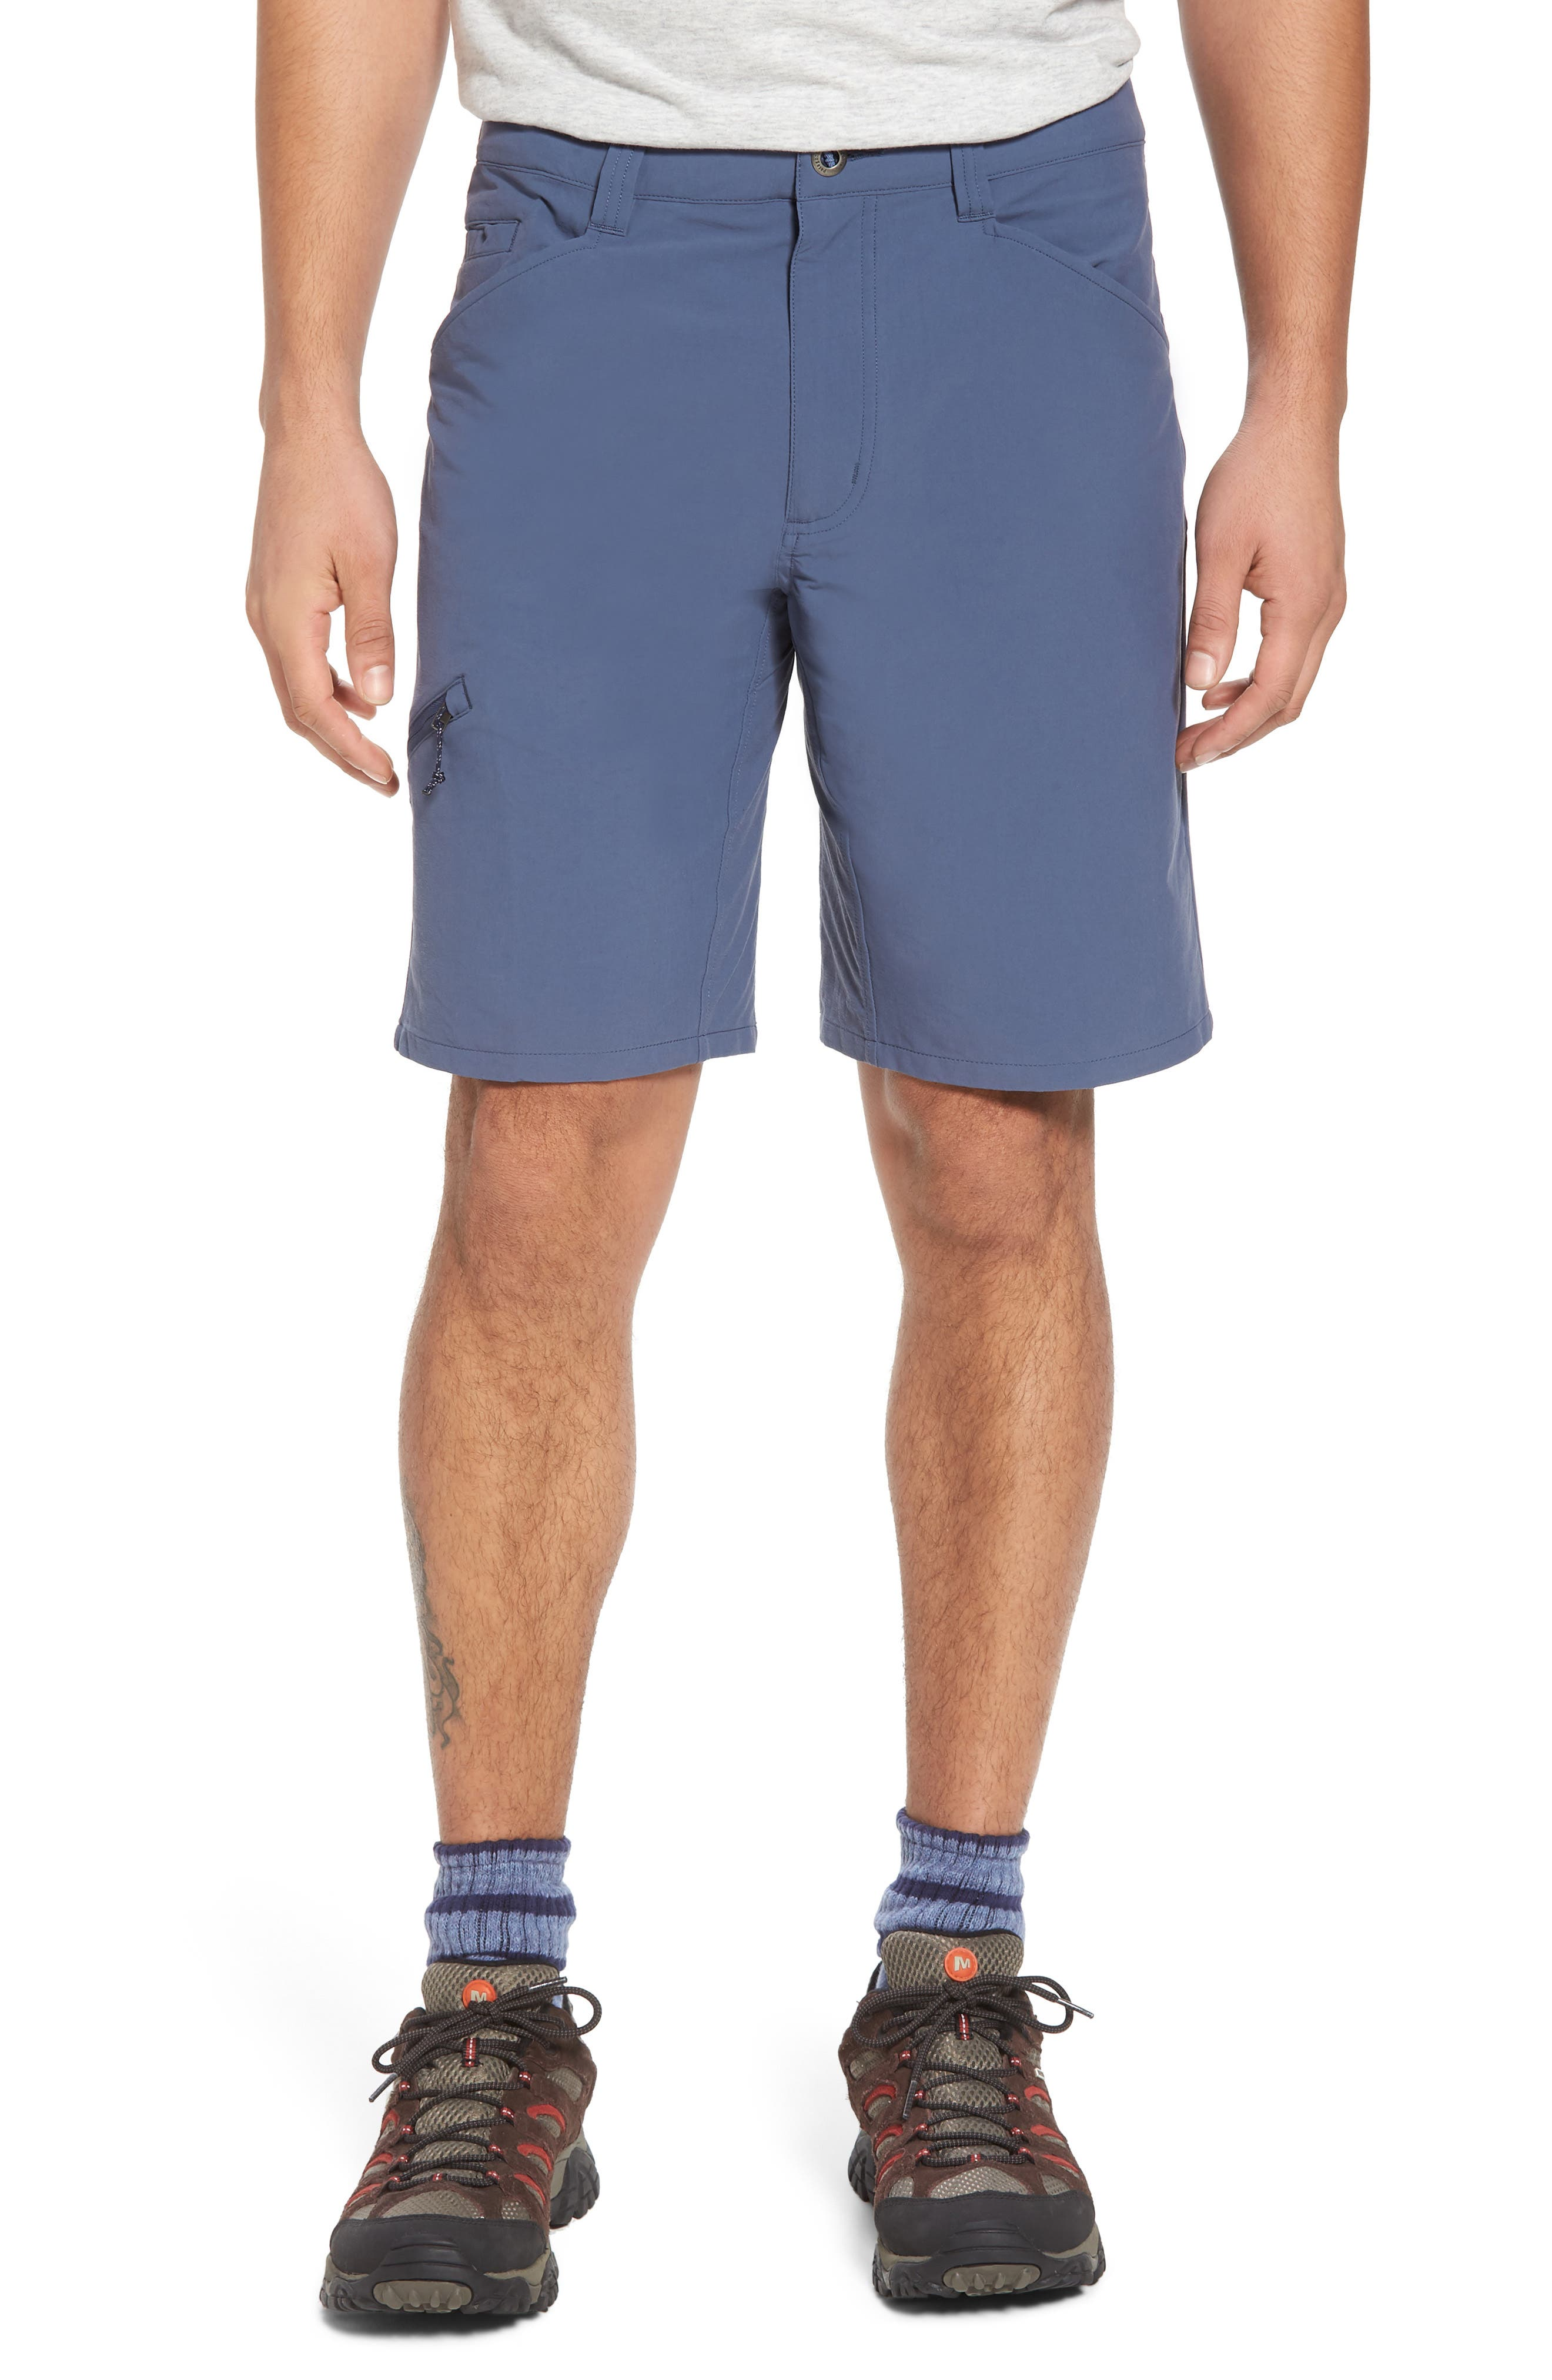 Quandary Shorts,                         Main,                         color, Dolomite Blue